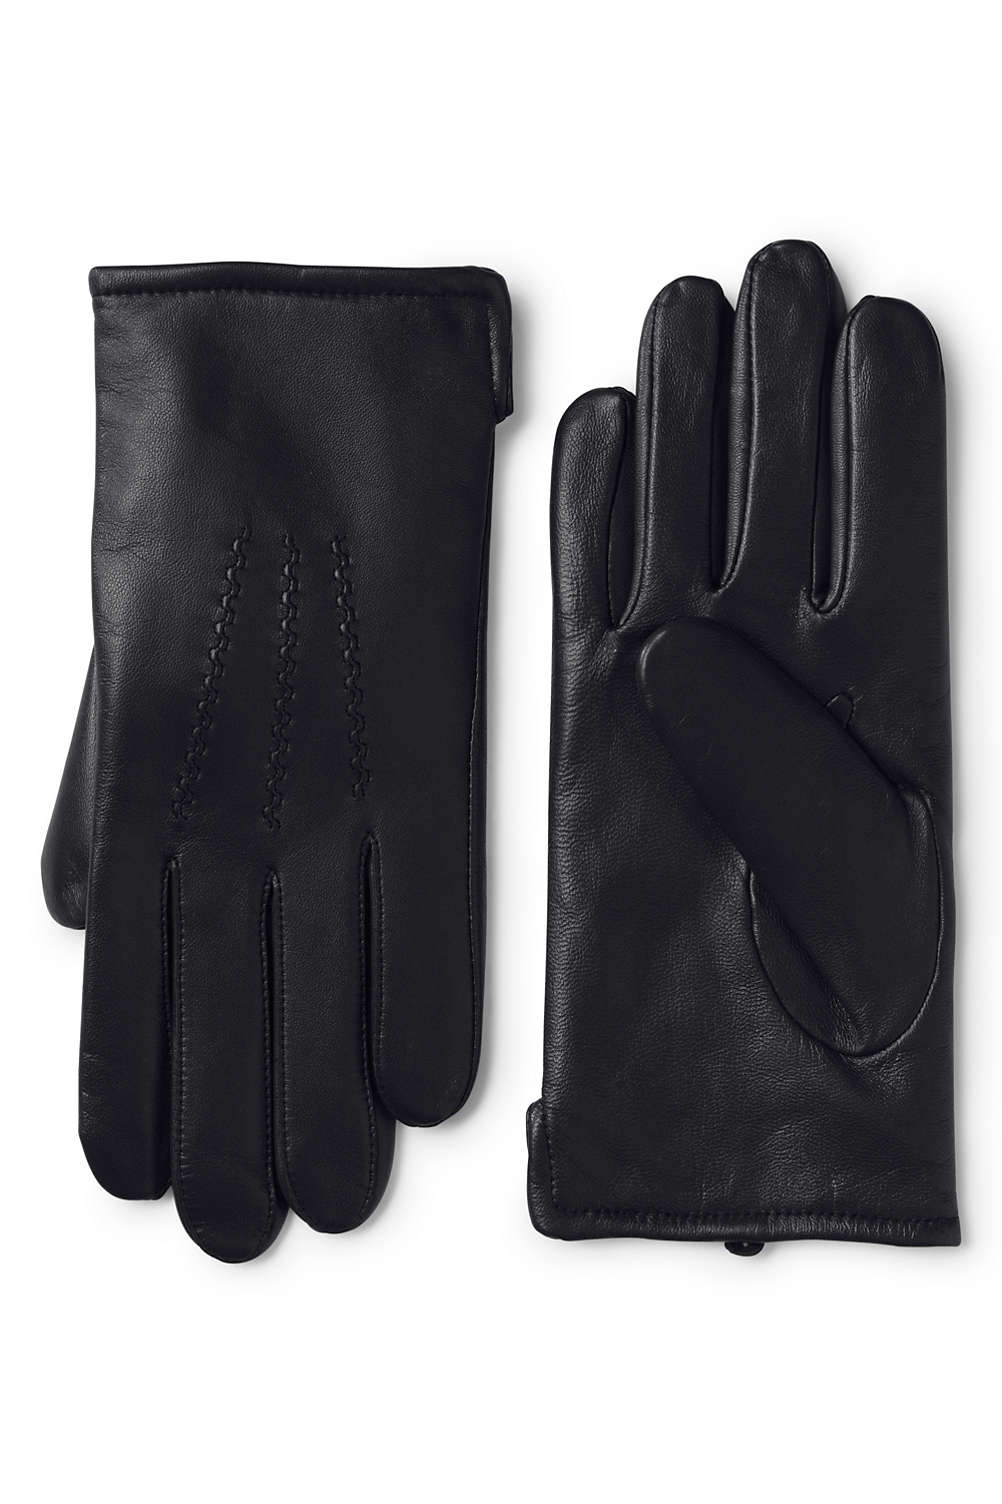 e58ef4f866c7 Men s Cashmere Lined Leather Gloves from Lands  End